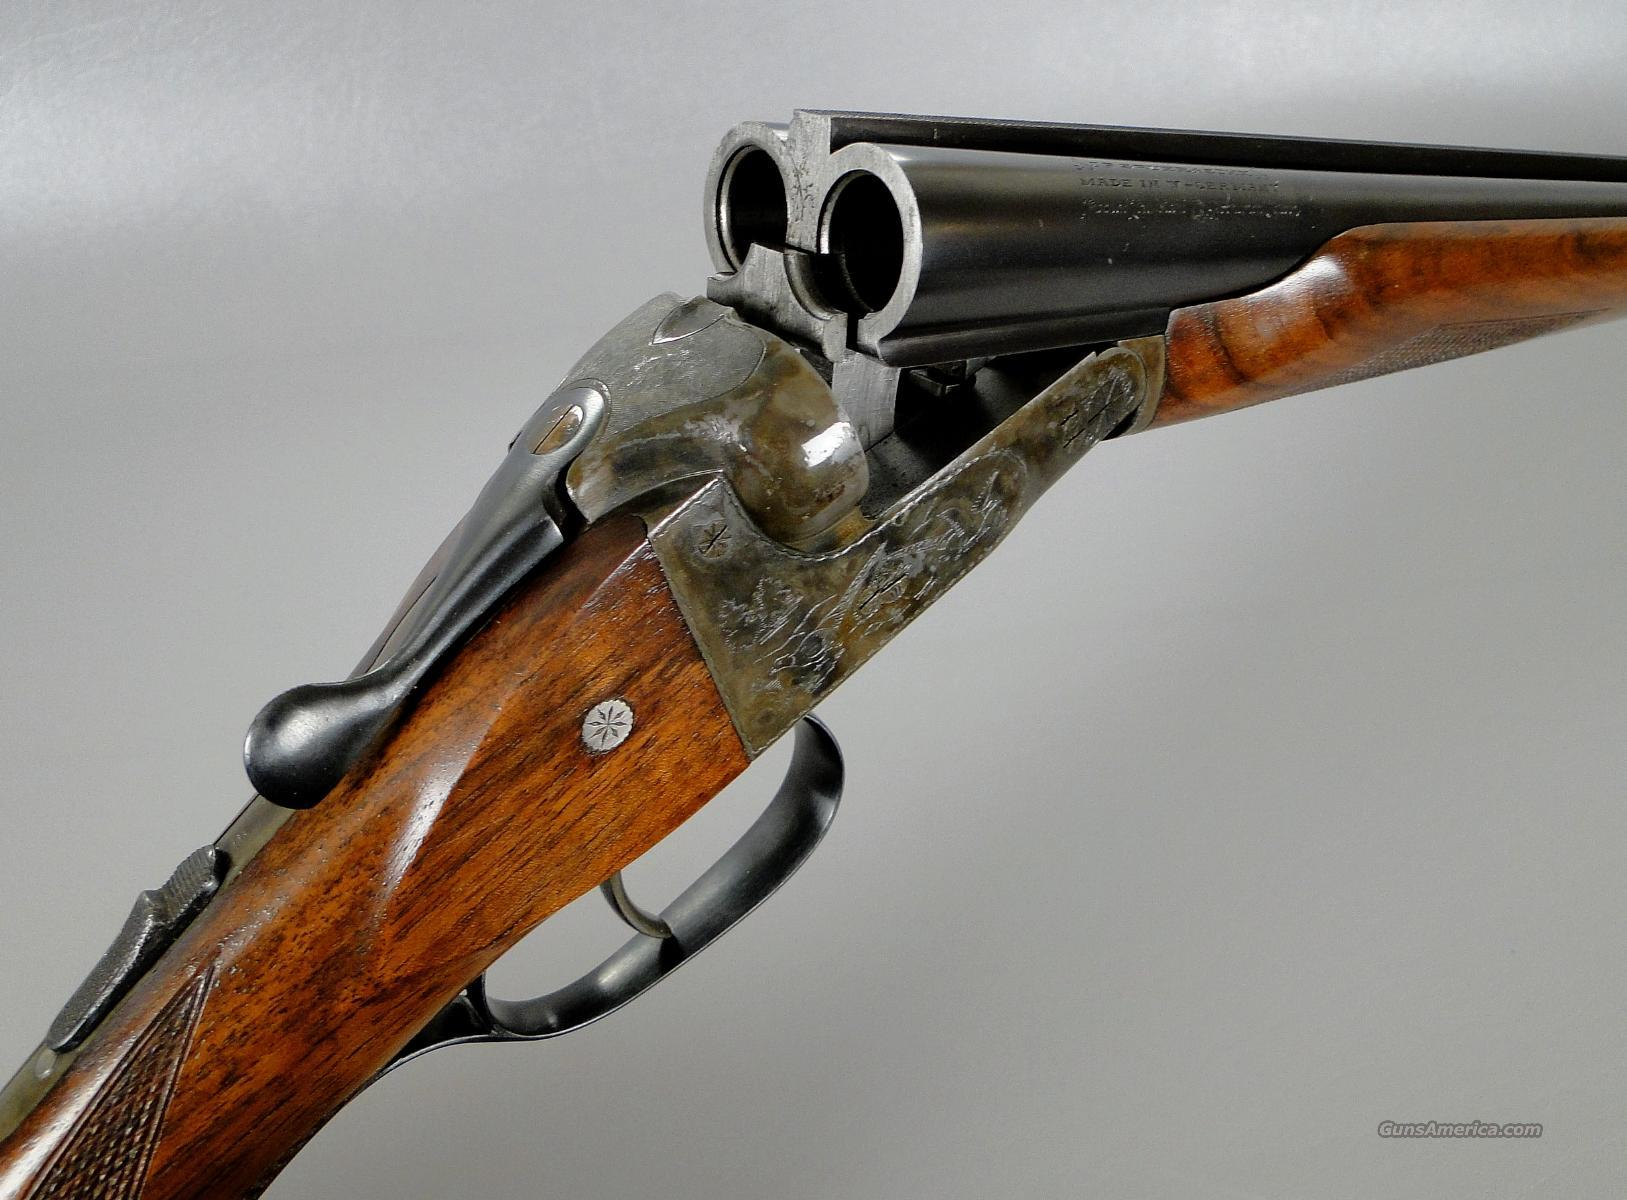 JP Sauer 20 Gauge Side By Side Shotgun with Beavertail Forend IN Excellent Condition!  Guns > Shotguns > J.P. Sauer Shotguns